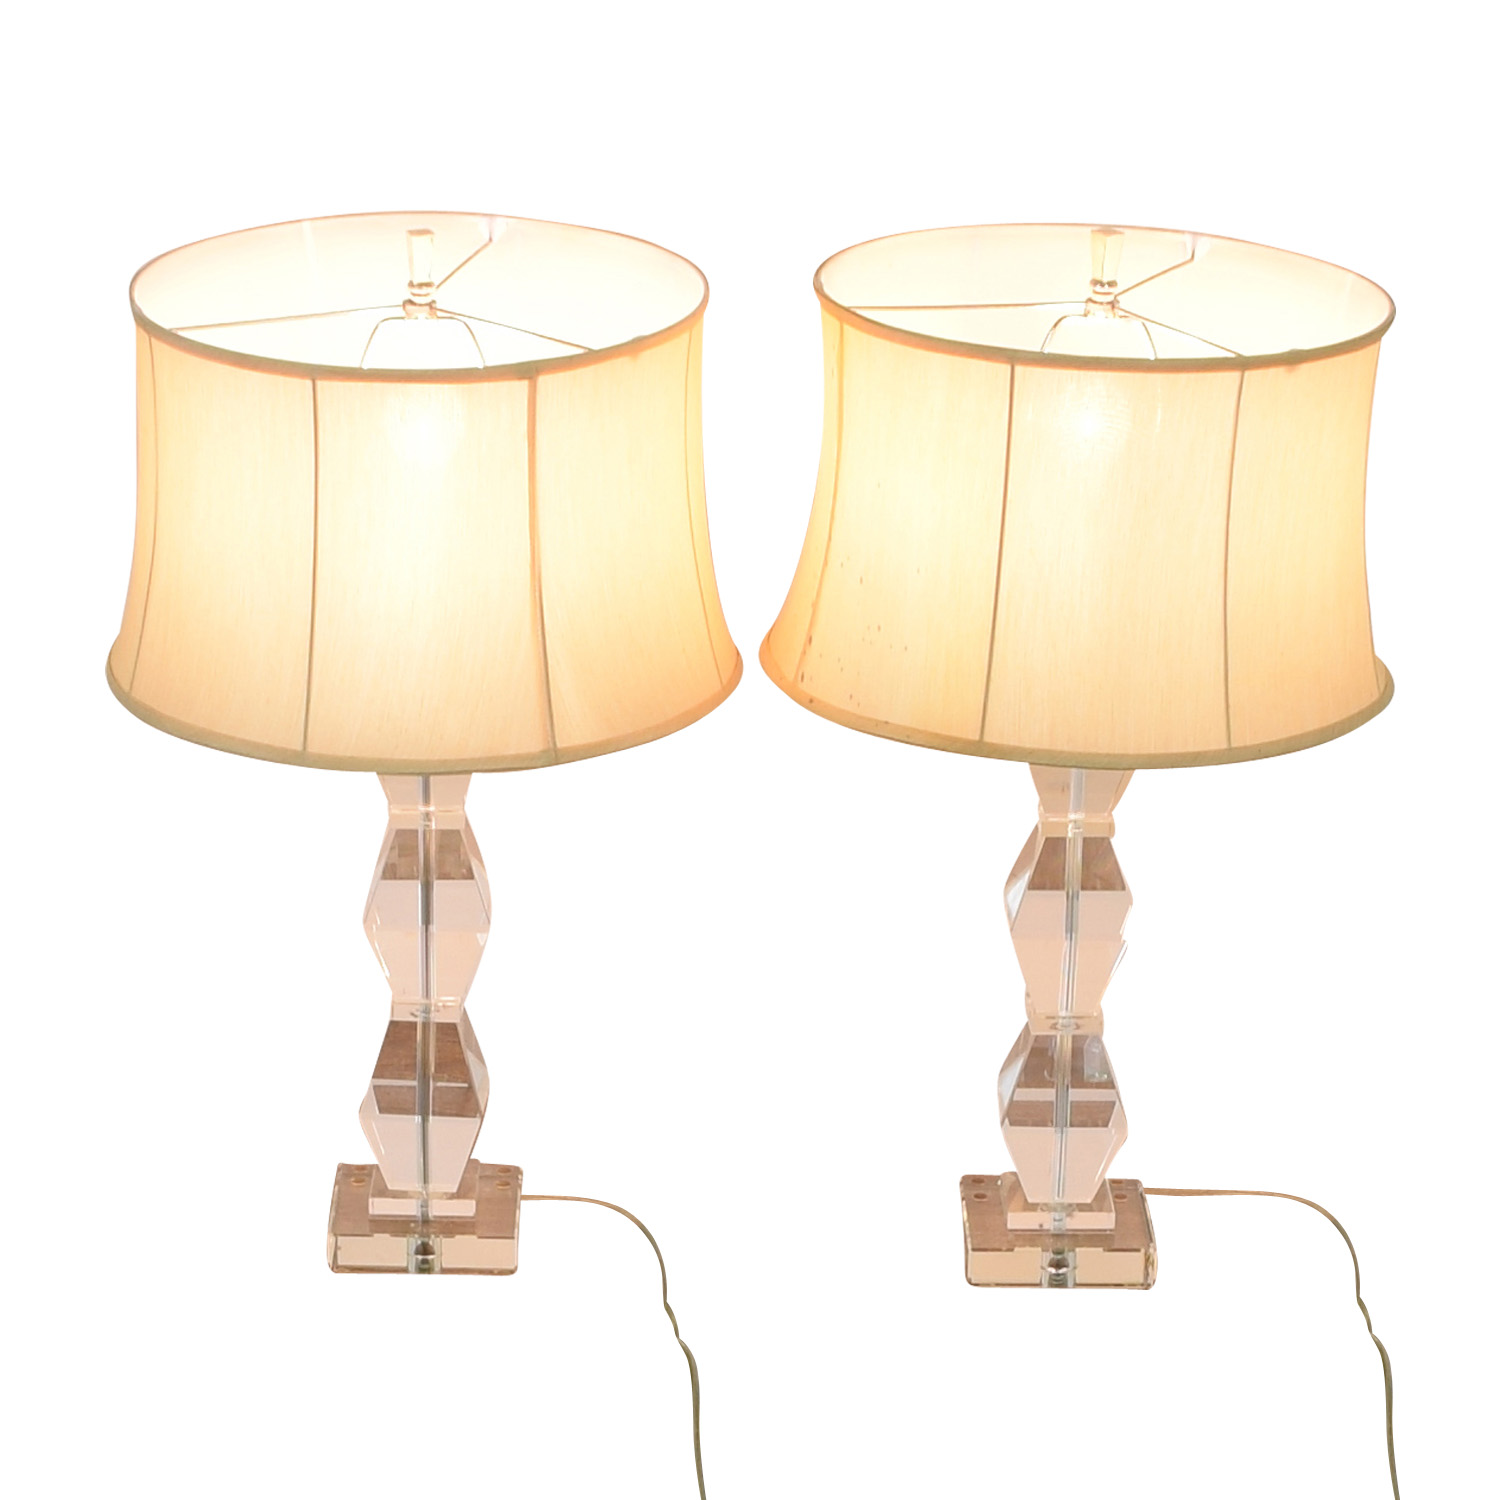 Ethan Allen Ethan Allen Geometric Crystal Table Lamps used